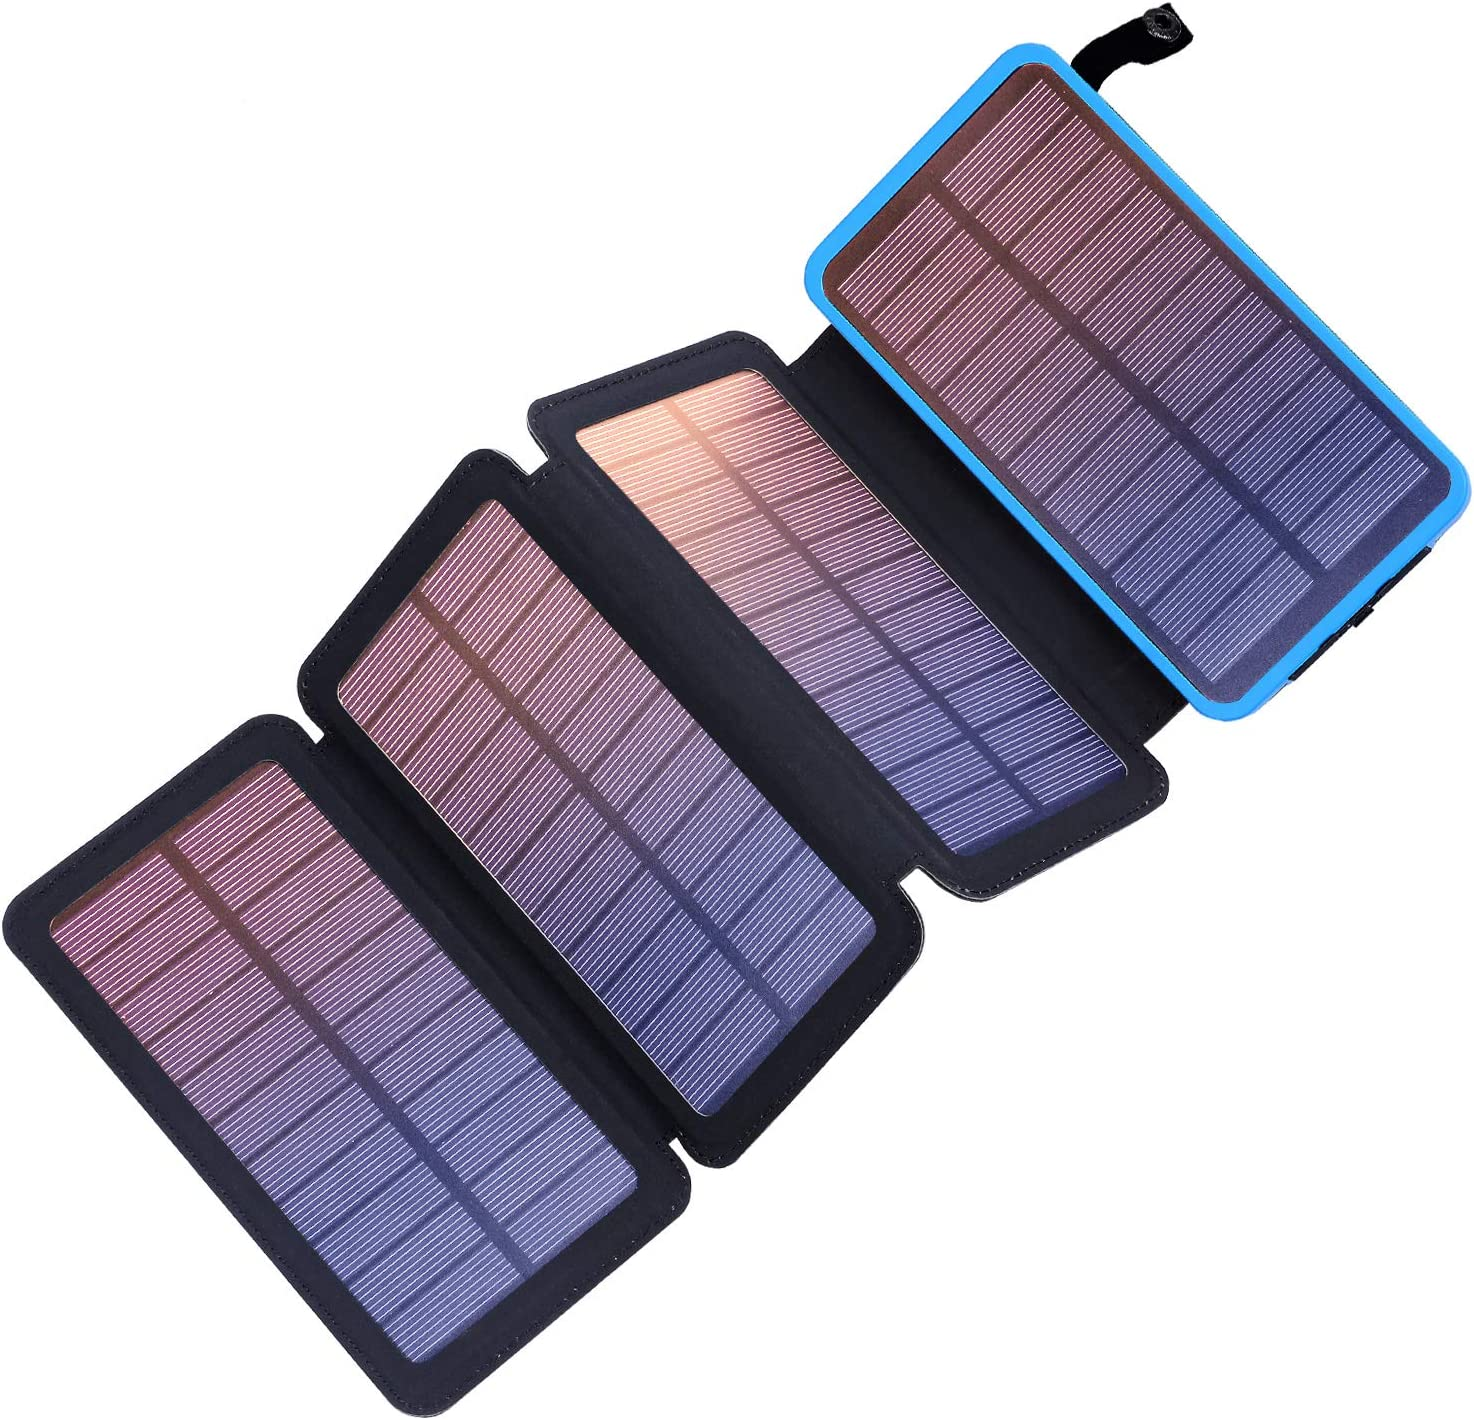 Pealiker Solar Charger 25000mAh Portable Solar Power Bank with 4 Solar Panels Waterproof Battery Pack with LED Lights for iPhone HUAWEI iPad Samsung